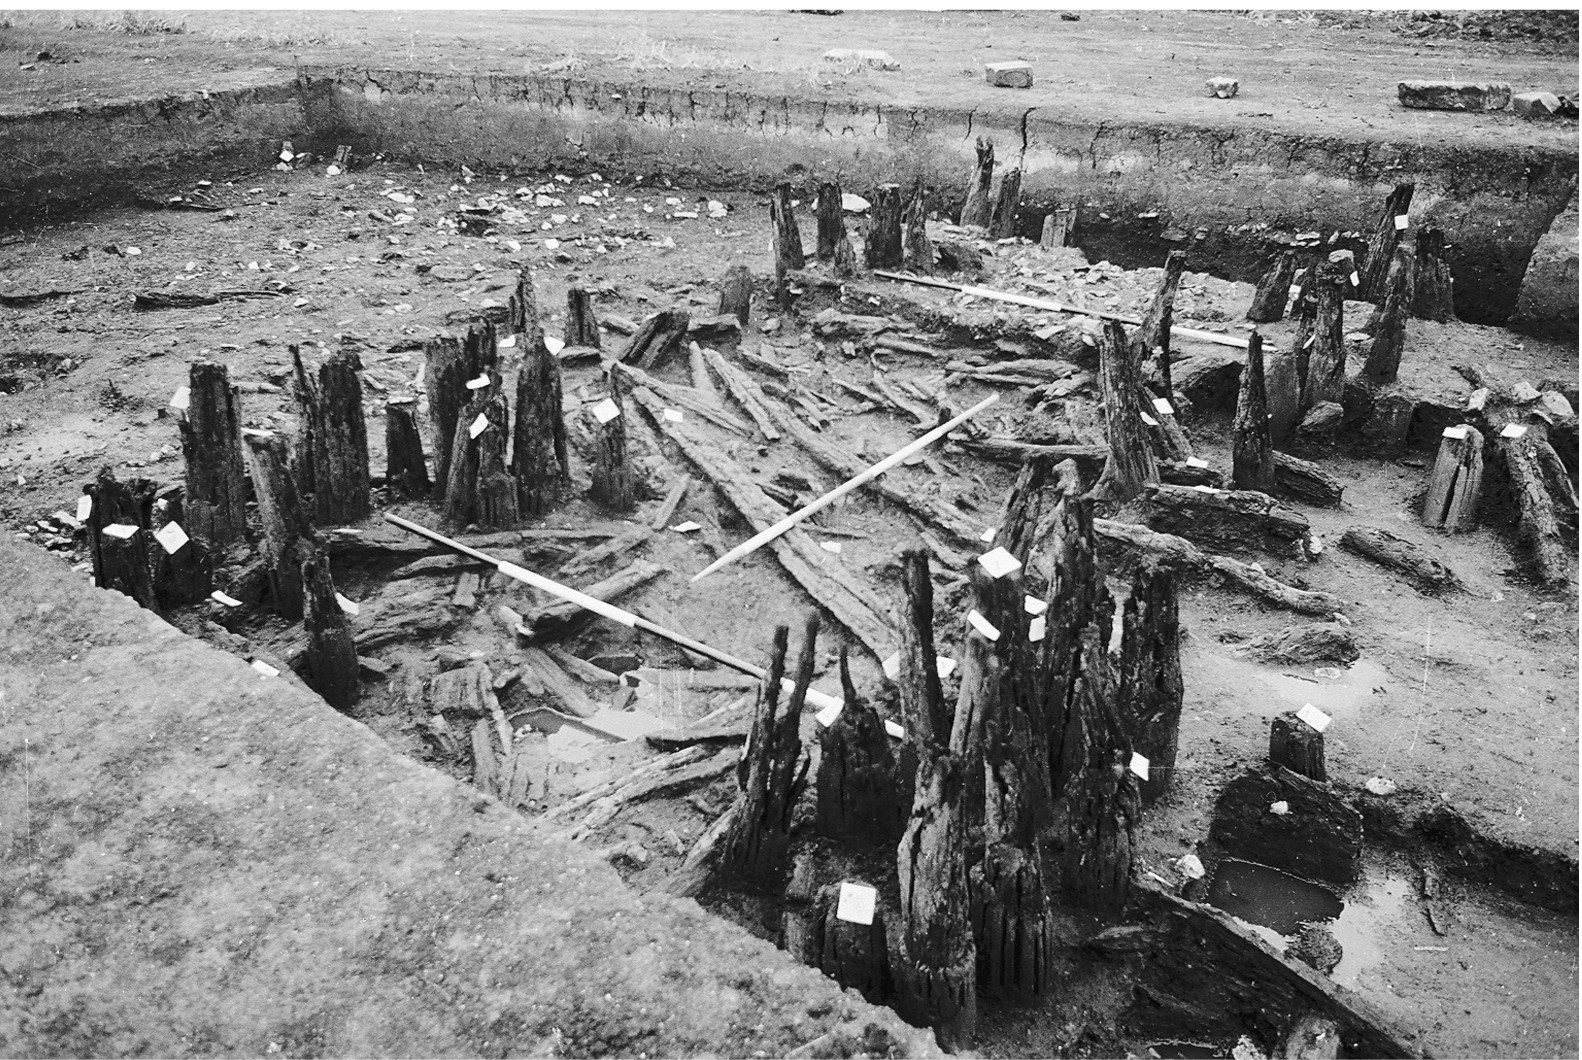 A black and white photo of an archaeological excavation. A trench contains two clearly defined rows of upright wooden posts in states of decay and disintegration. Between the two rows are scattered planks and wooden debris.